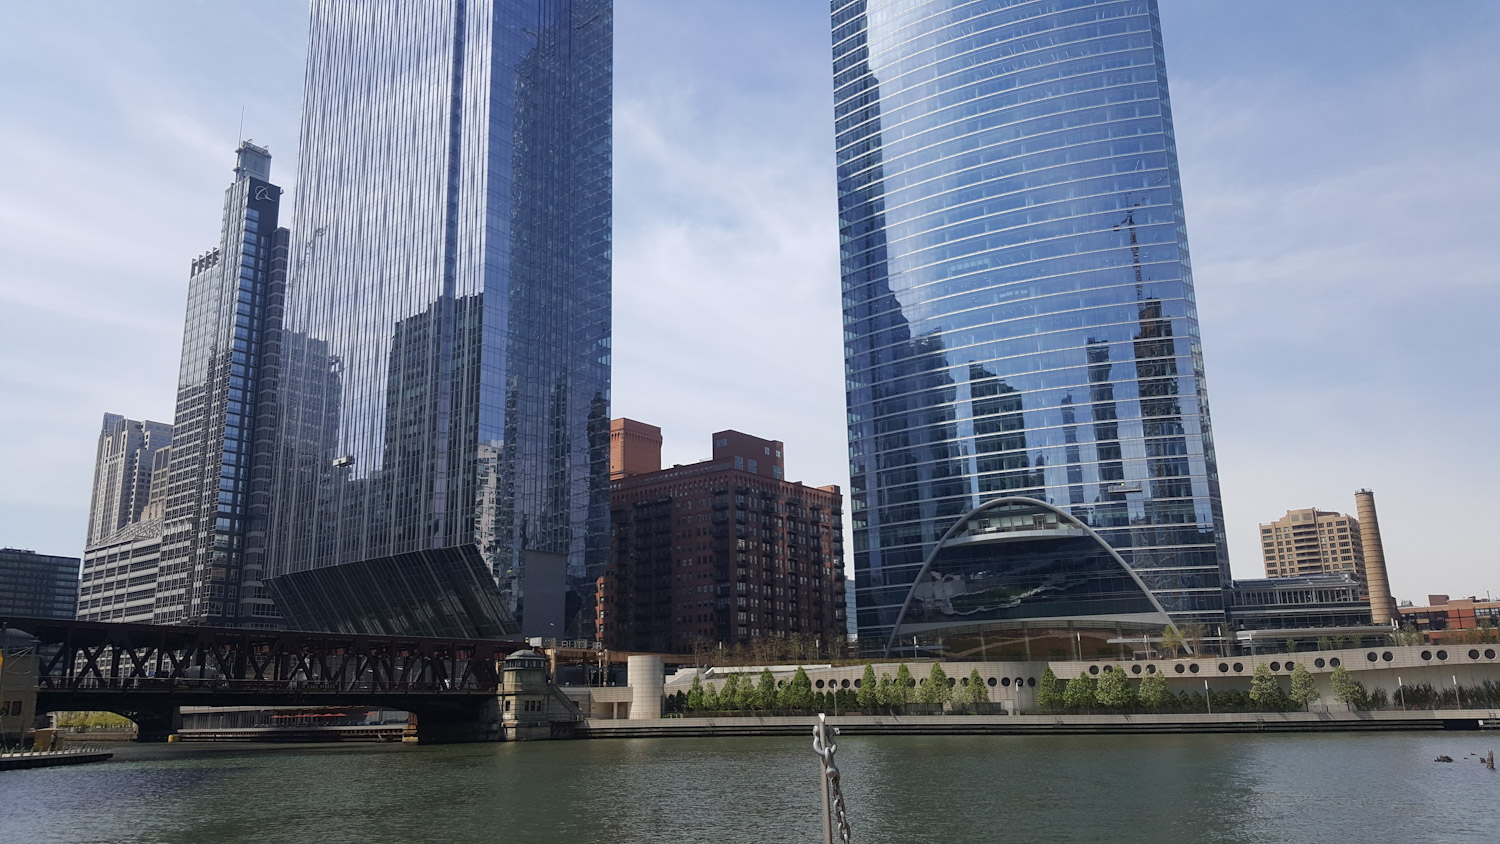 Wolf Point - Where the 3 branches of the Chicago River meet. This is considered the birthplace of the city.